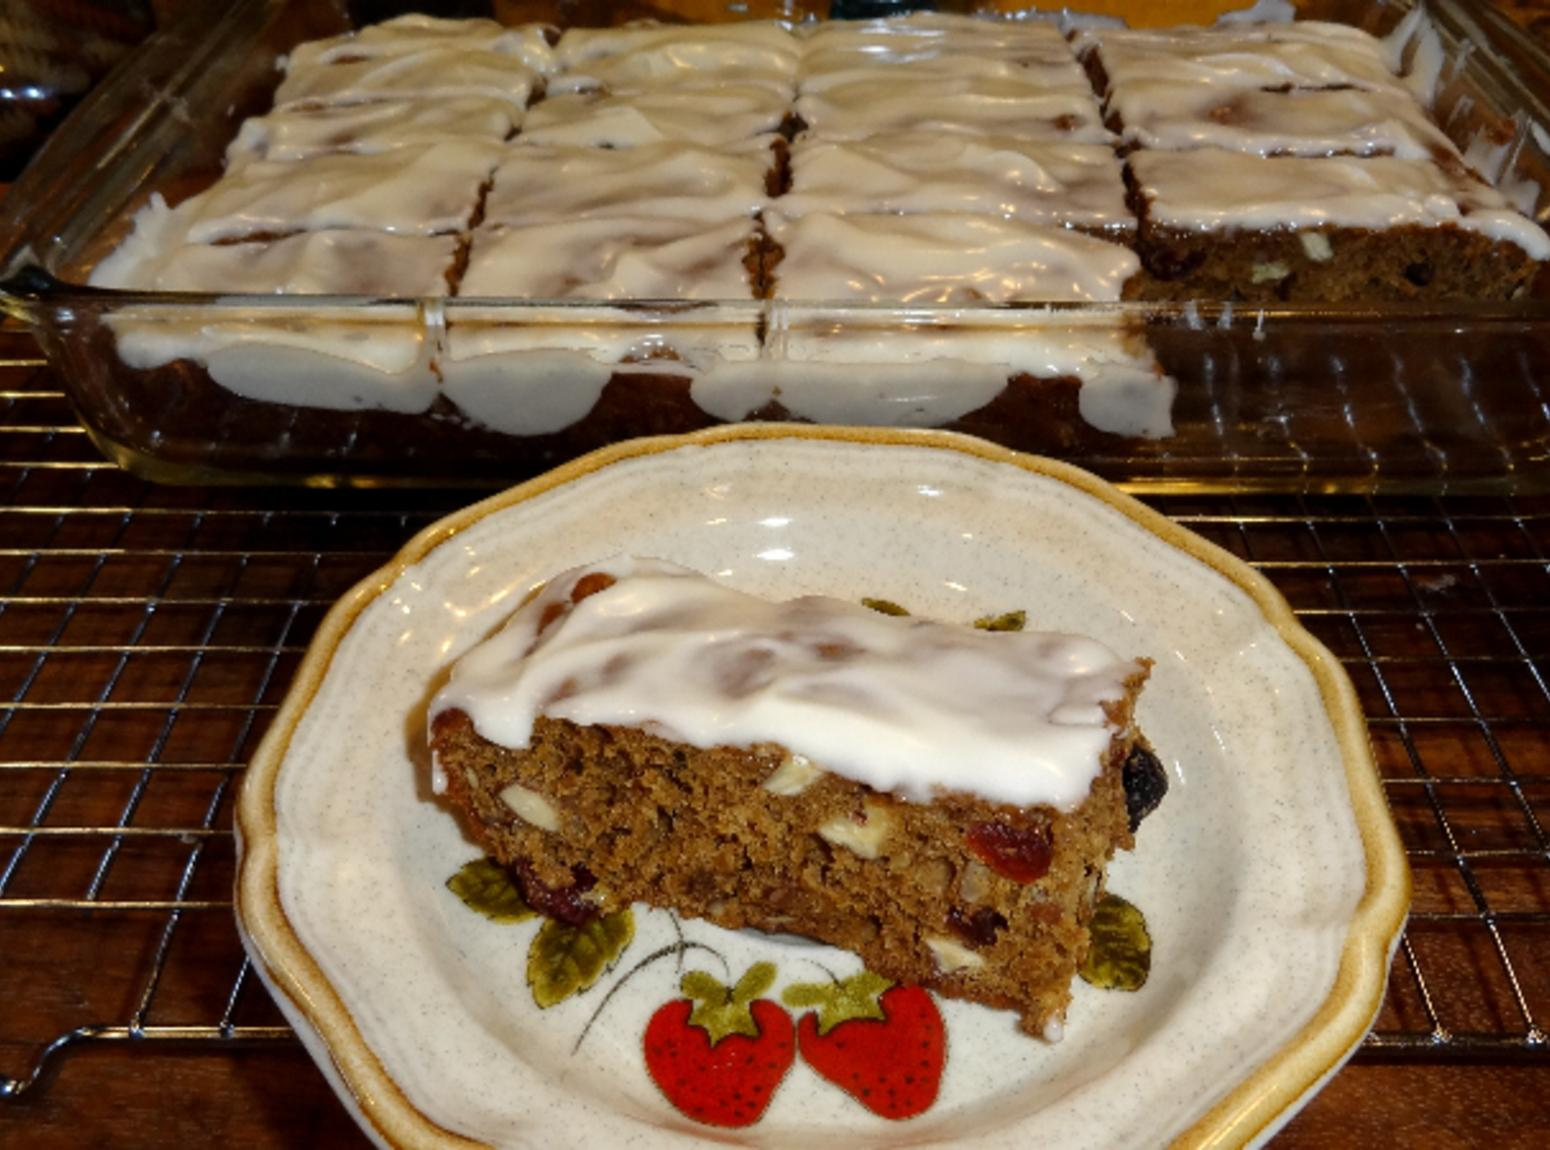 FRUIT AND NUT BARS WITH RUM ICING--BONNIE'S Recipe